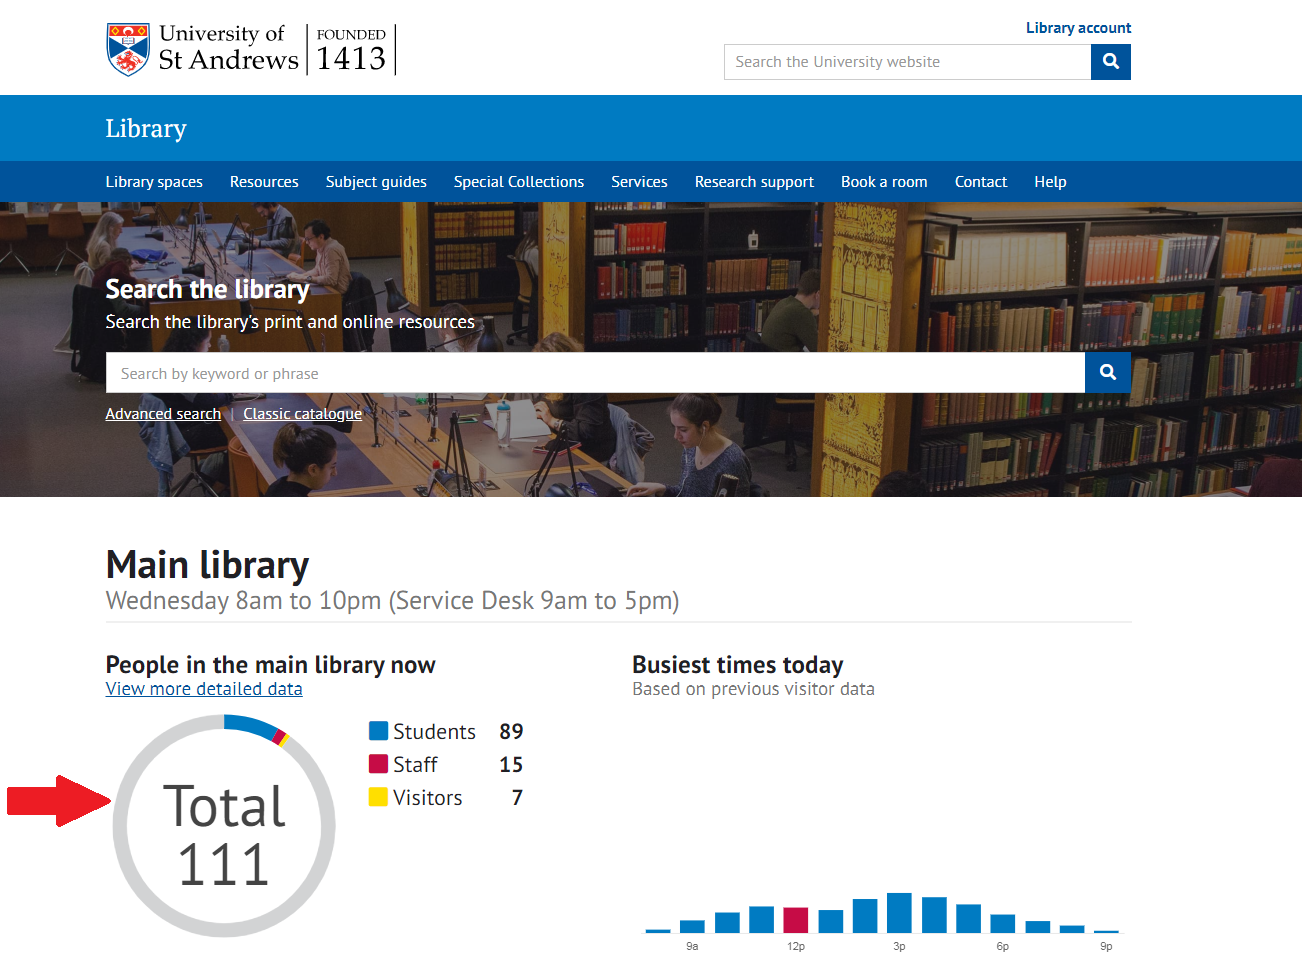 Image of the Library homepage with number of people in the main library now highlighted.